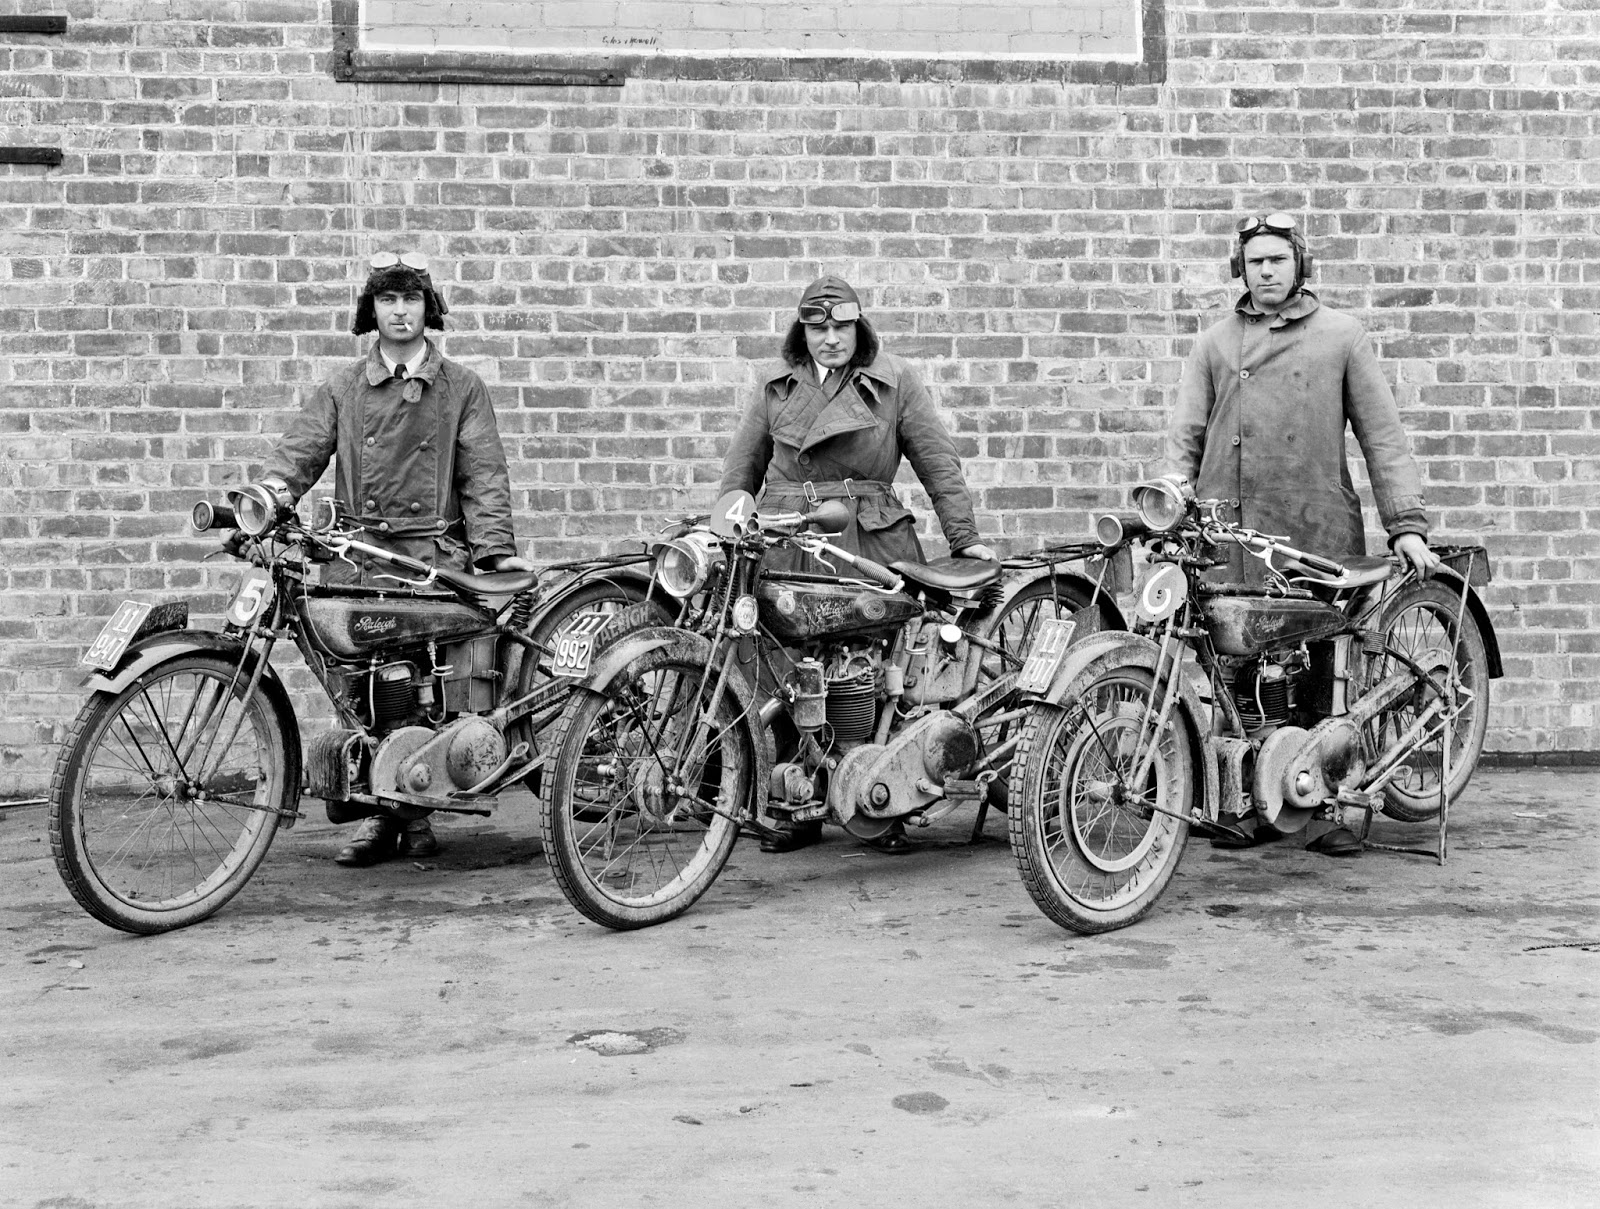 Motorcyclists and Raleigh motorcycles, ca. 1920s.jpg